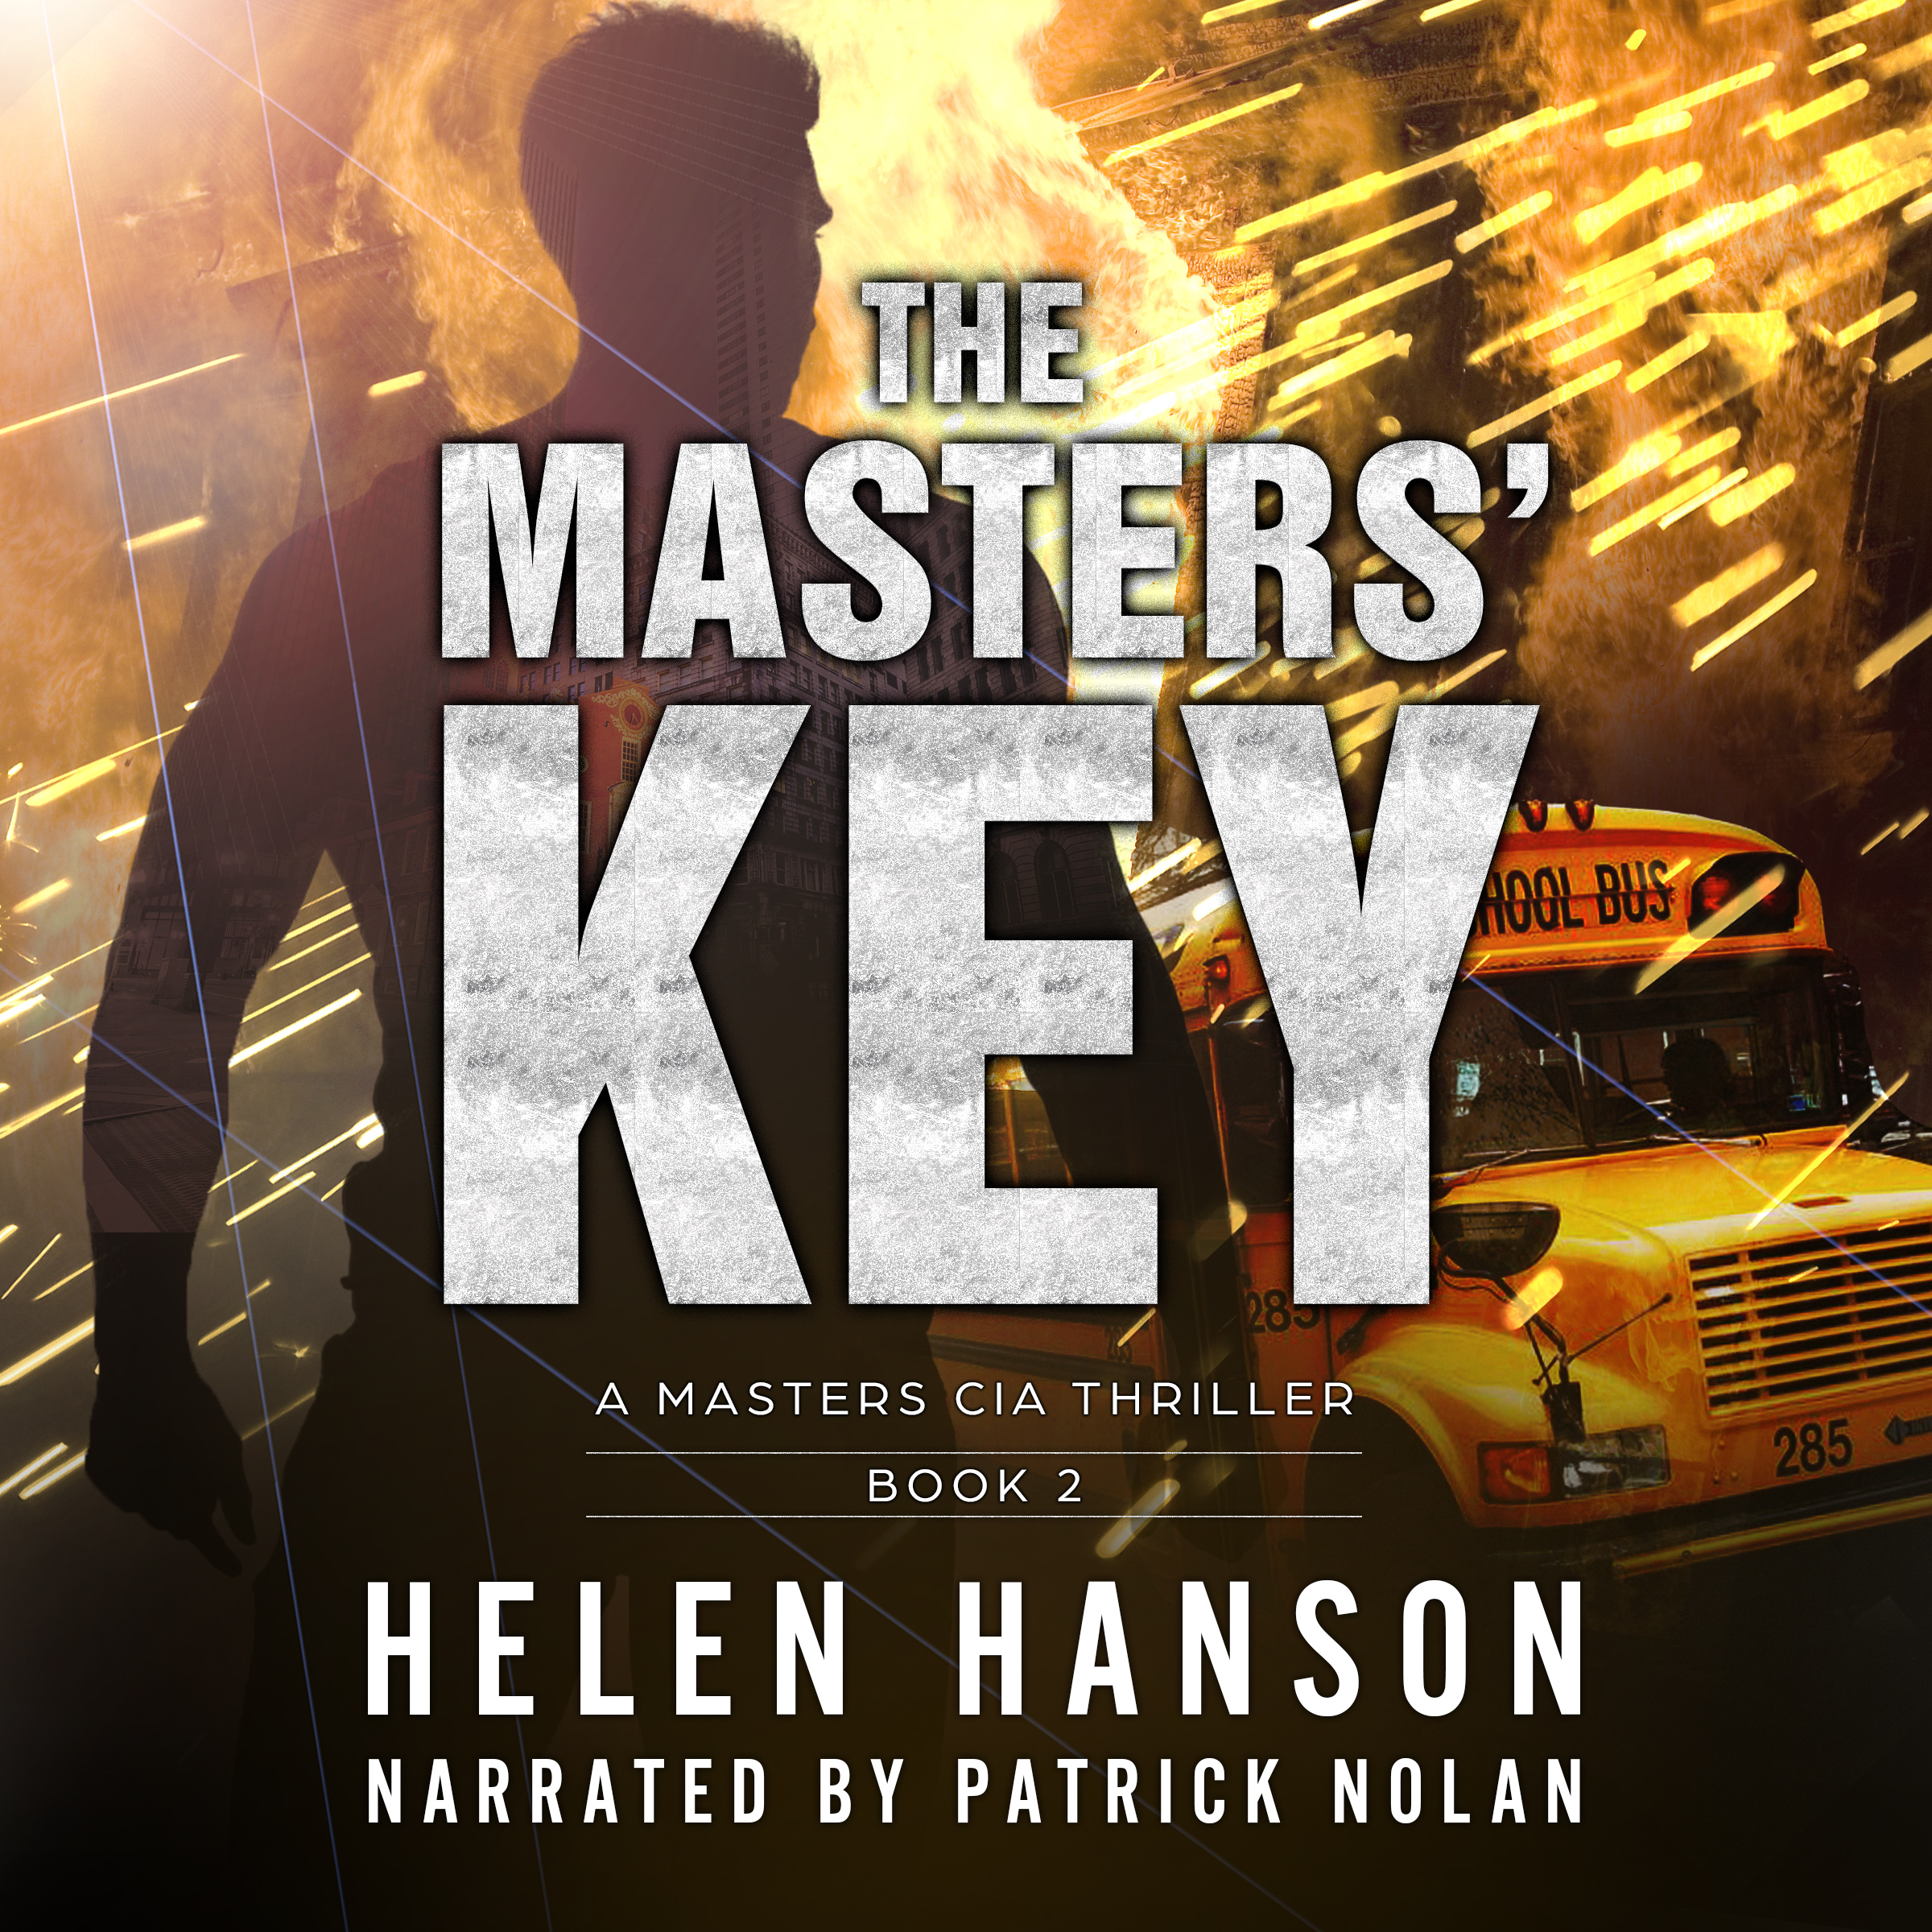 the masters' key, hackers, thriller series, cia thrillers, spy novels, terrorism thrillers, espionage and spy thrillers, technothrillers, clint masters, audiobook, audible, itunes